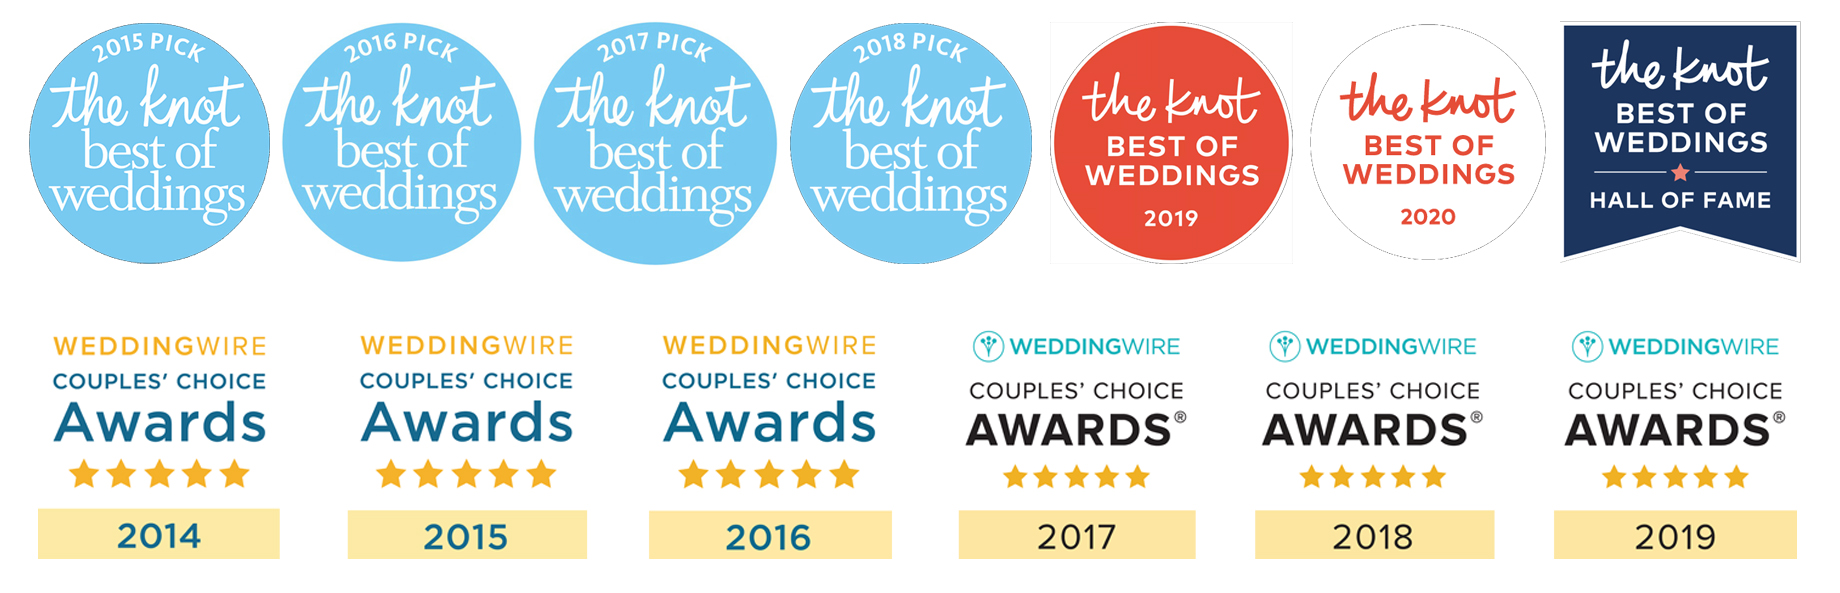 Best of Weddings couples' choice awards banner